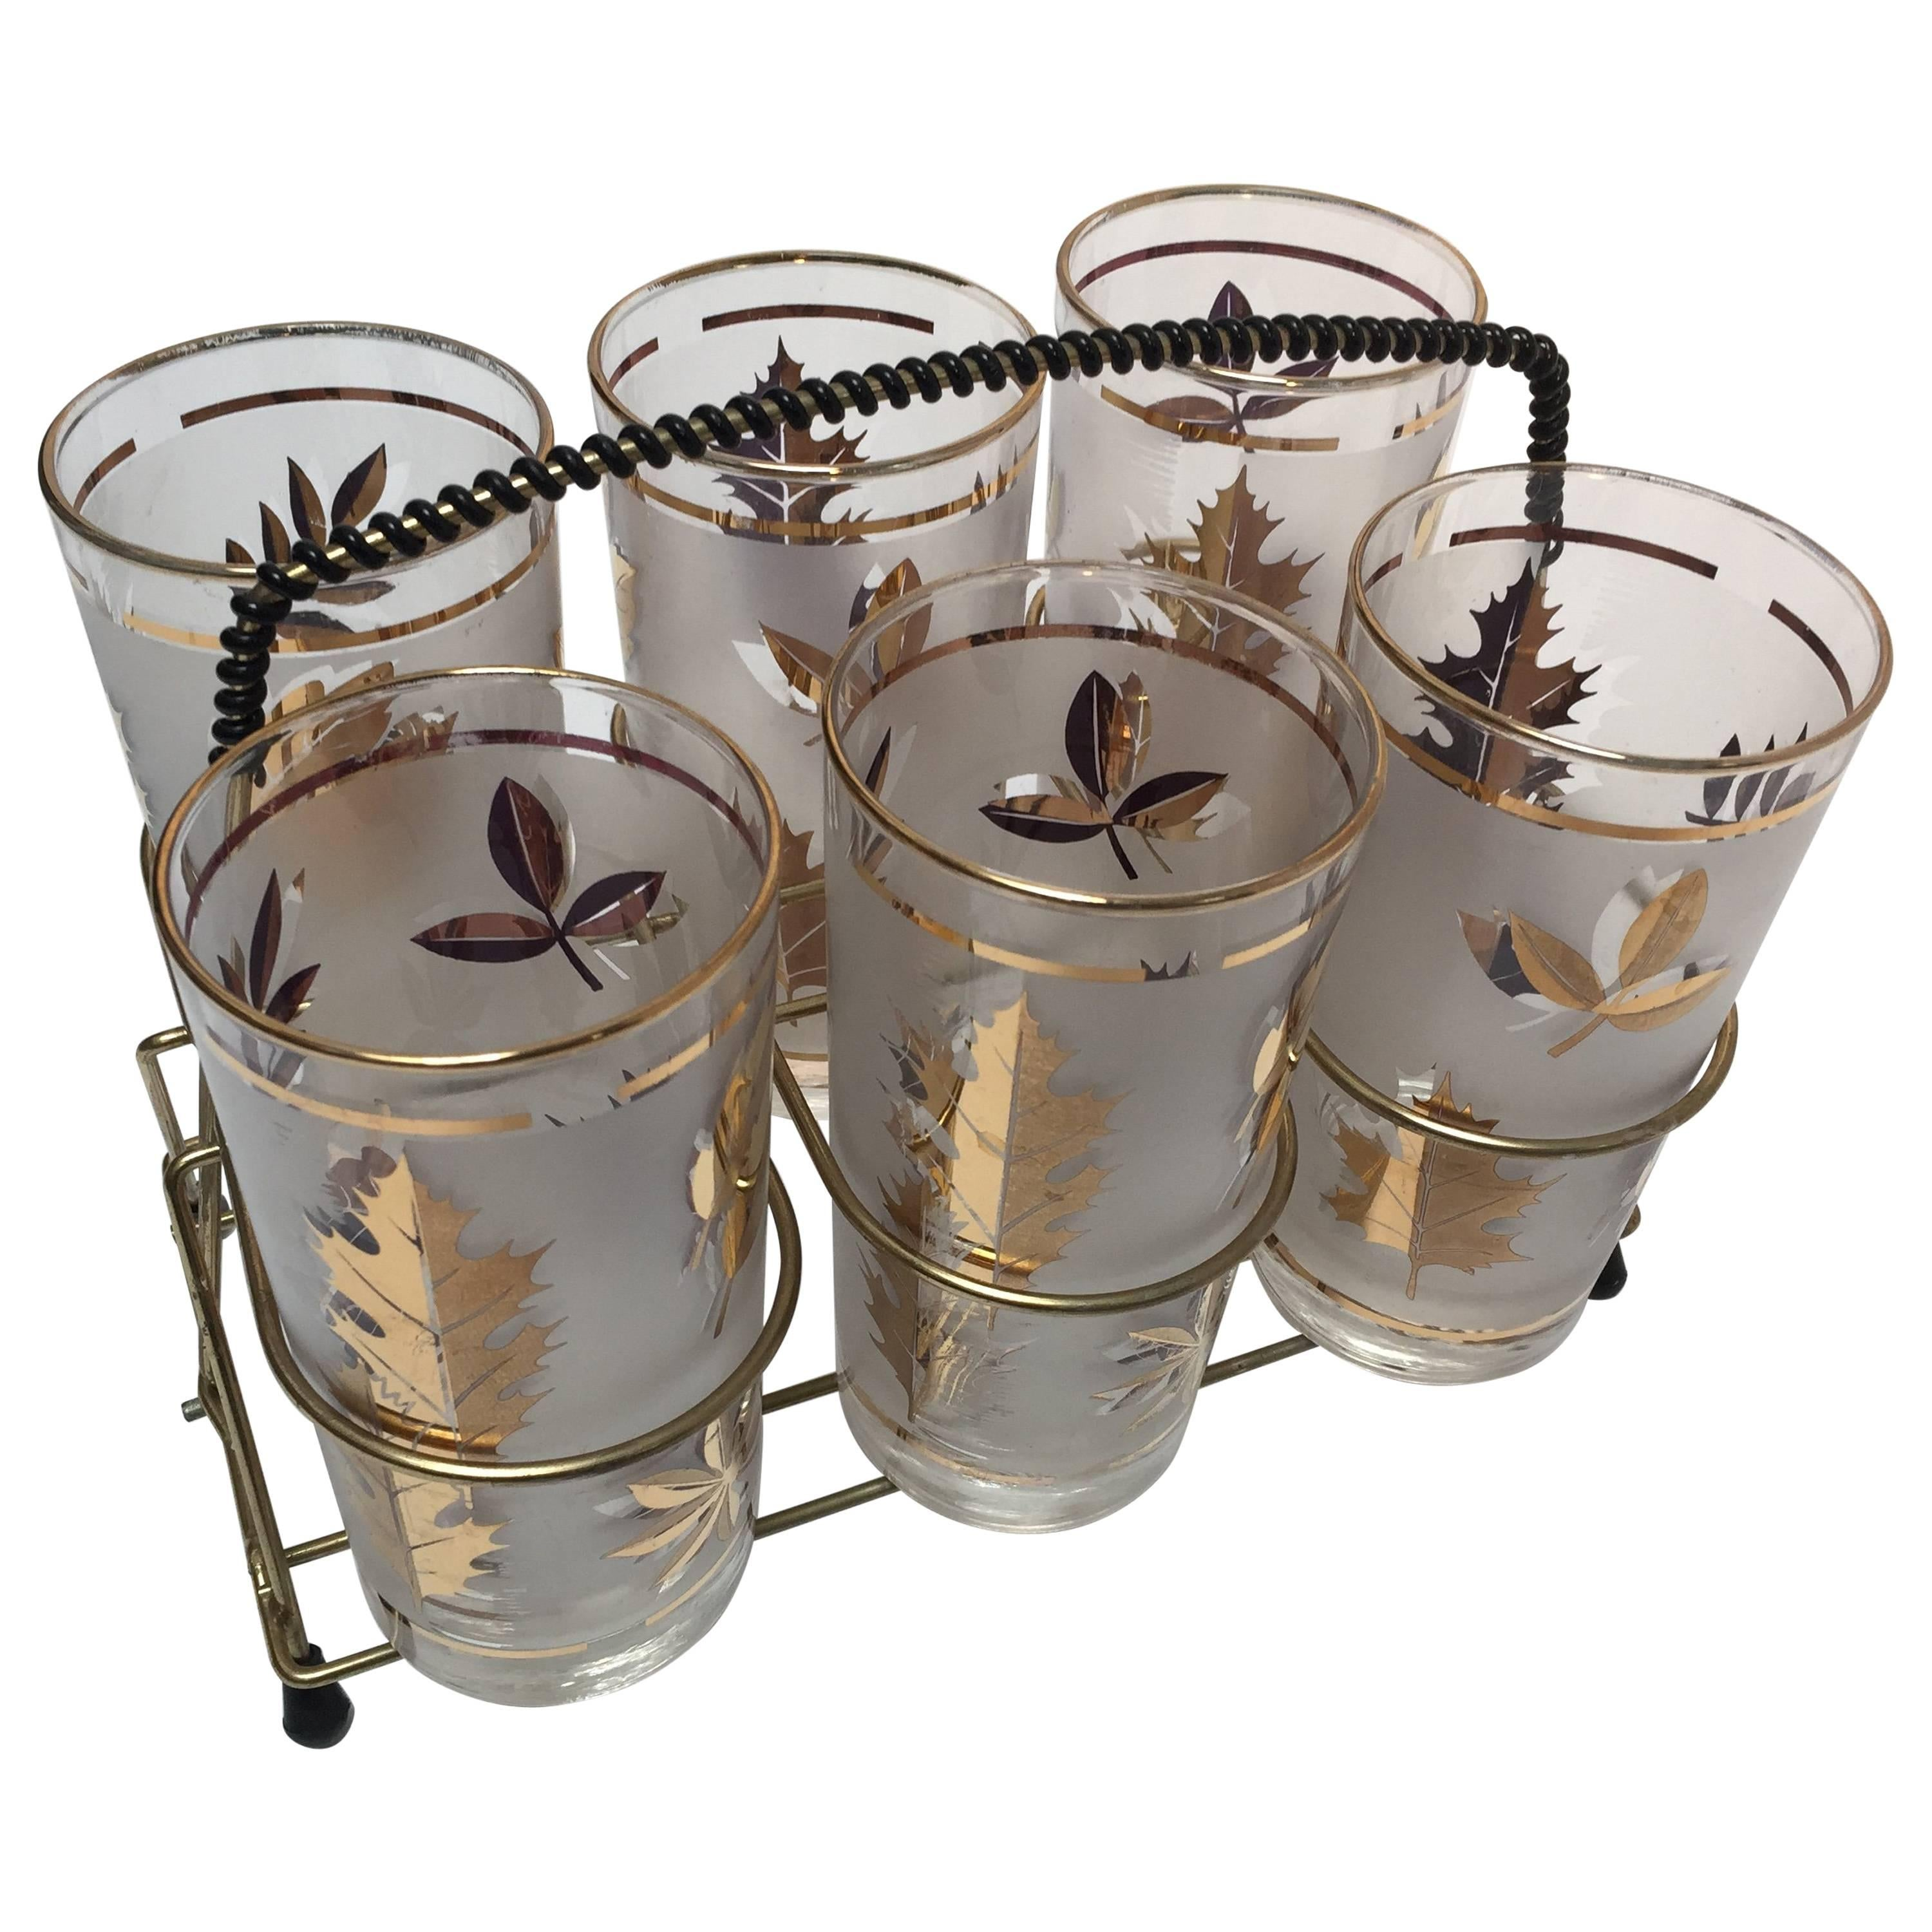 Midcentury Libbey Set of Six Highball Frosted and Gold Glasses in Brass Cart